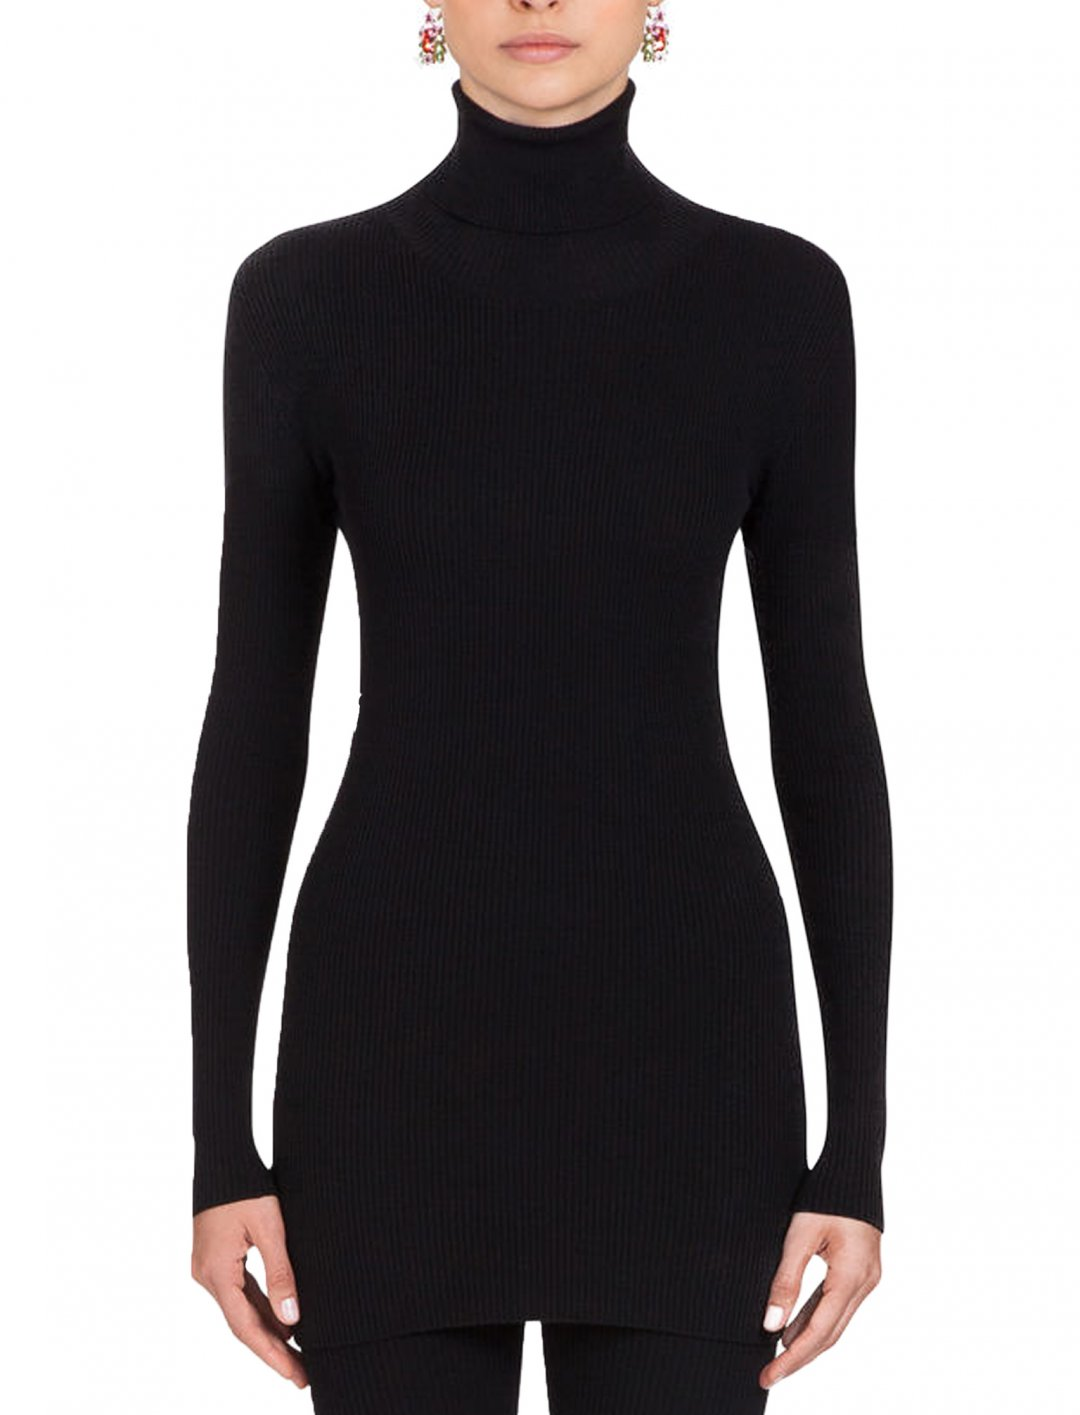 Ribbed Turtleneck Jumper Clothing Dolce & Gabbana